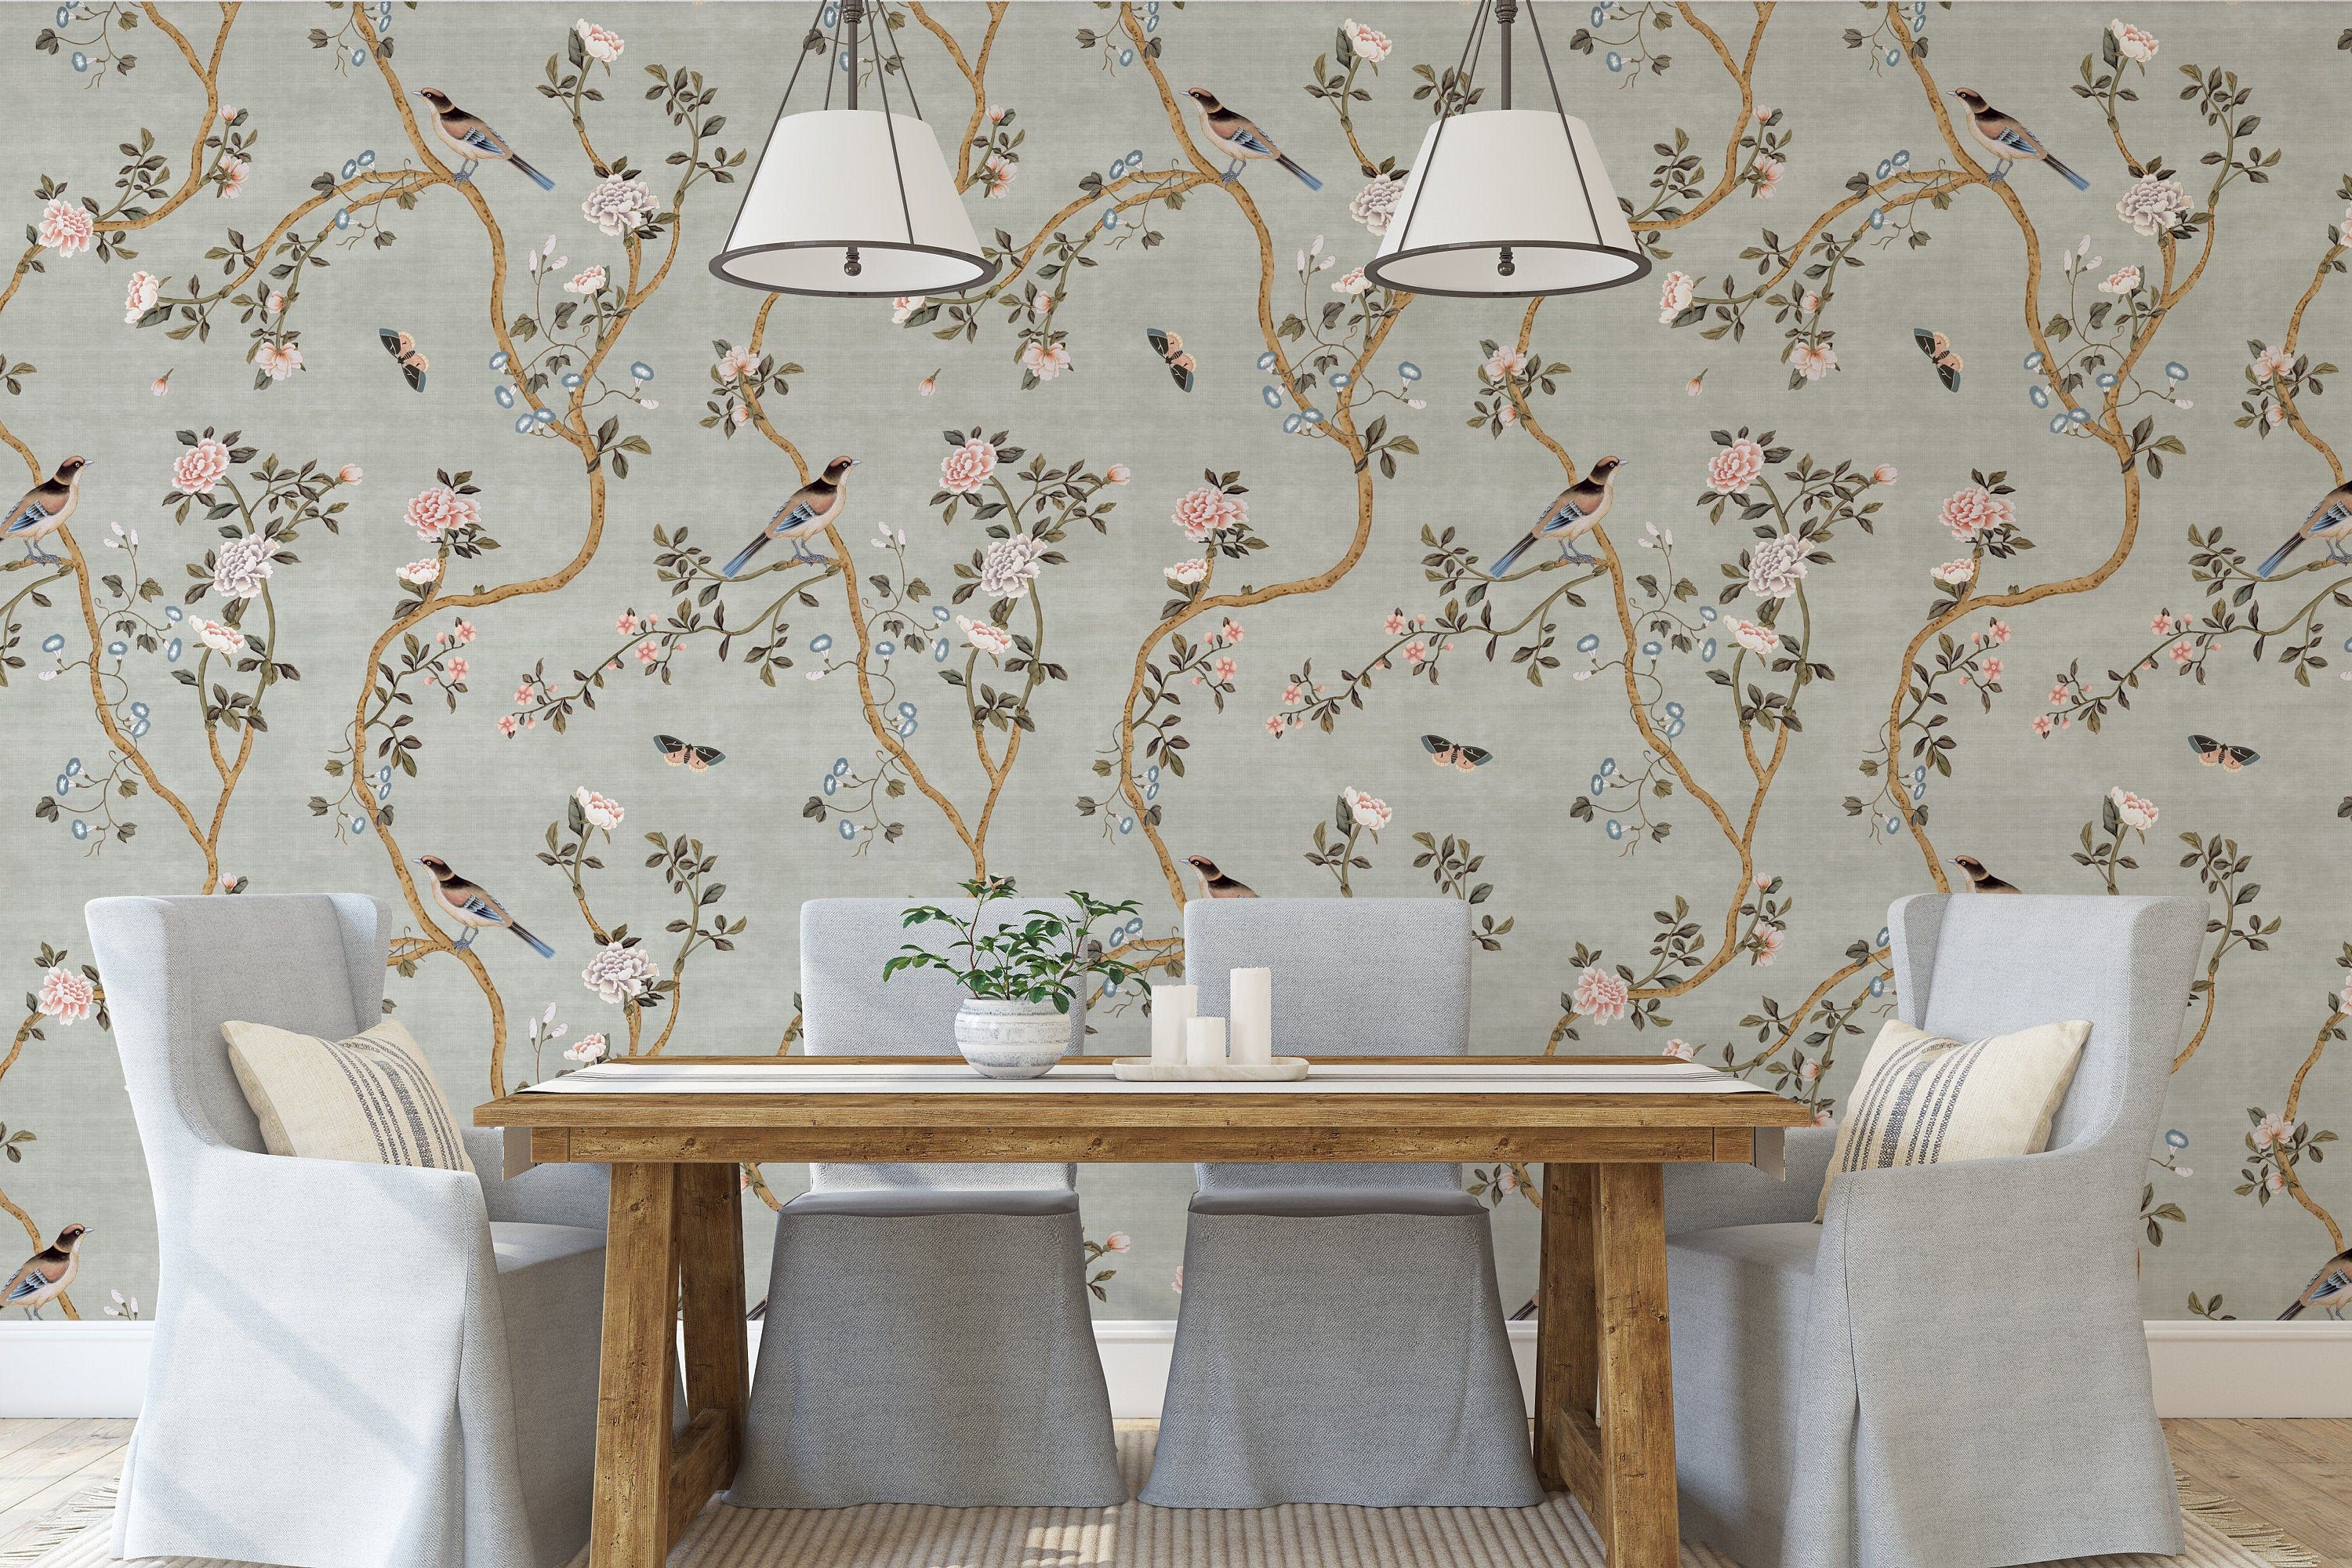 New Avignon Chinoiserie Peel N Stick Or Prepasted Wallpaper Removable Vinyl Free Non Toxic Chinoiserie Prepasted Wallpaper Beautiful Wall